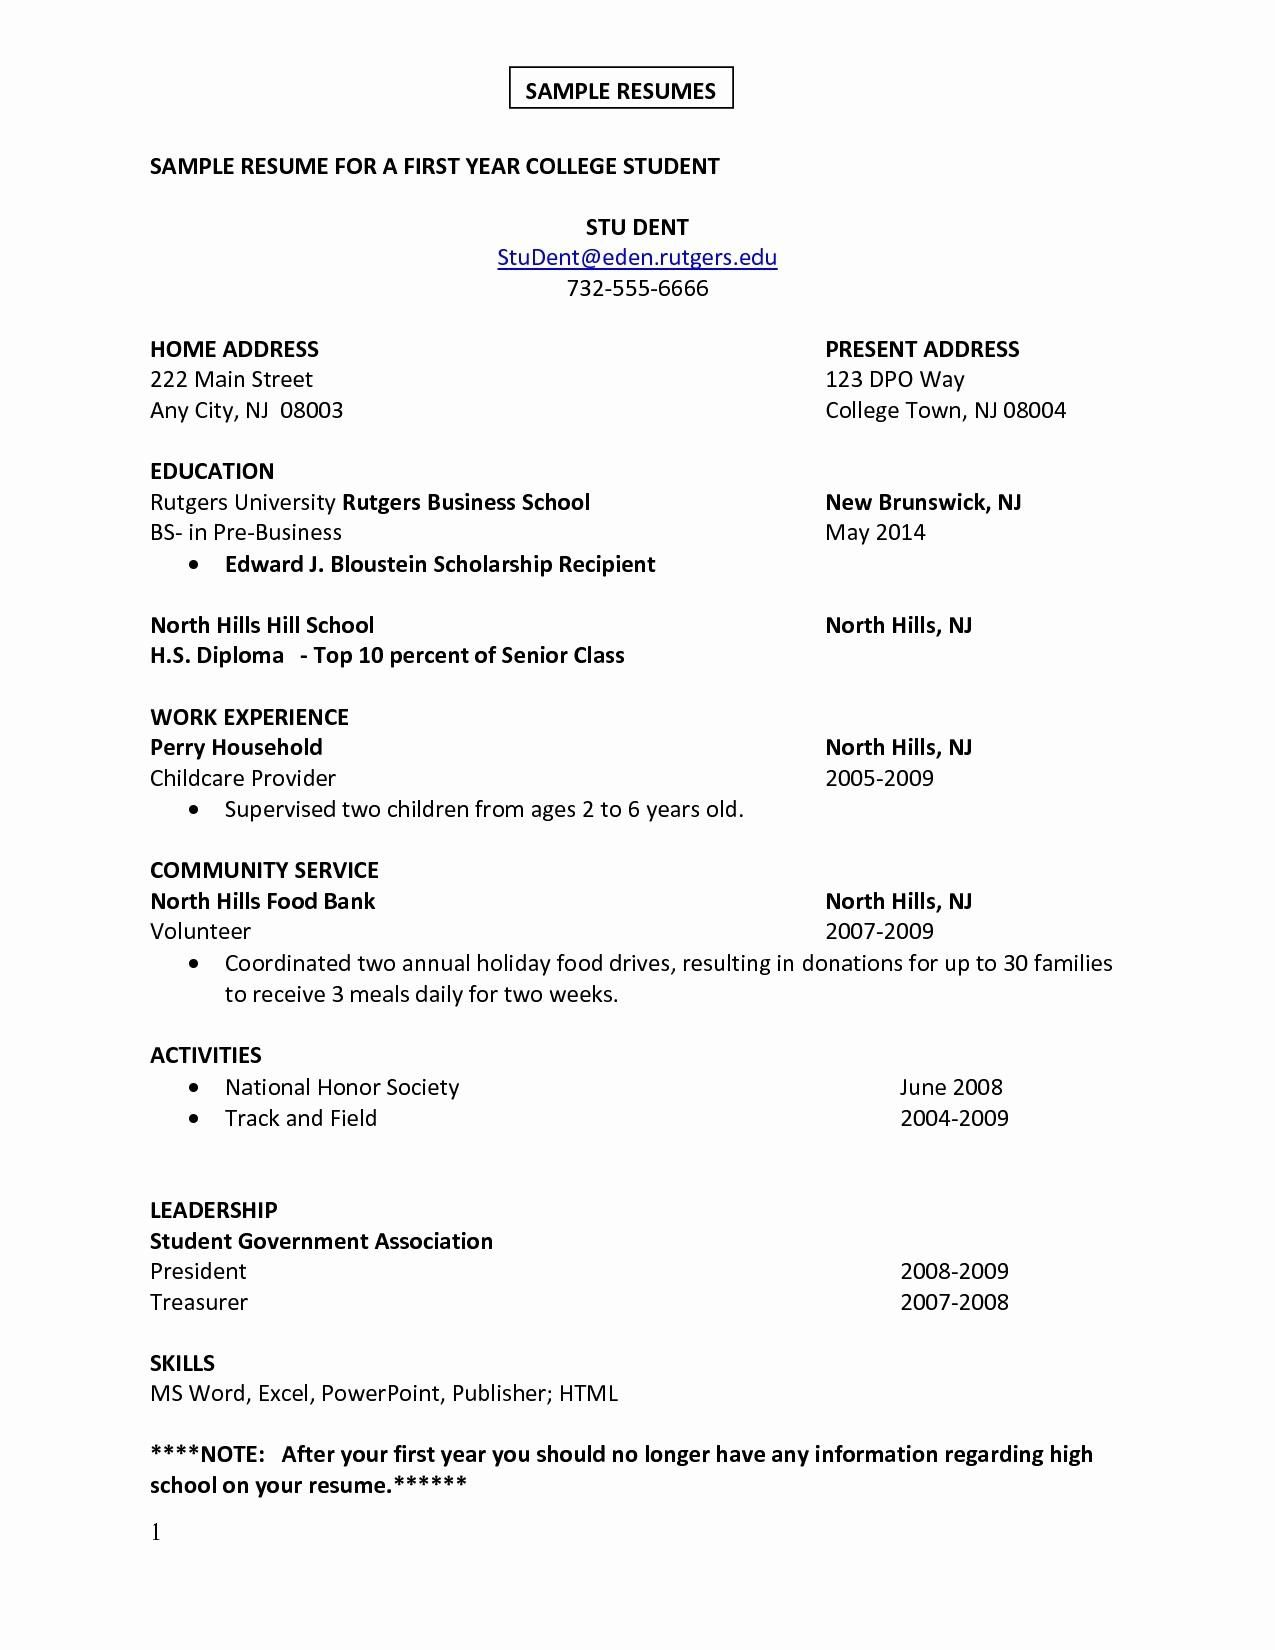 11 Rutgers Resume Template Ideas In 2020 With Images